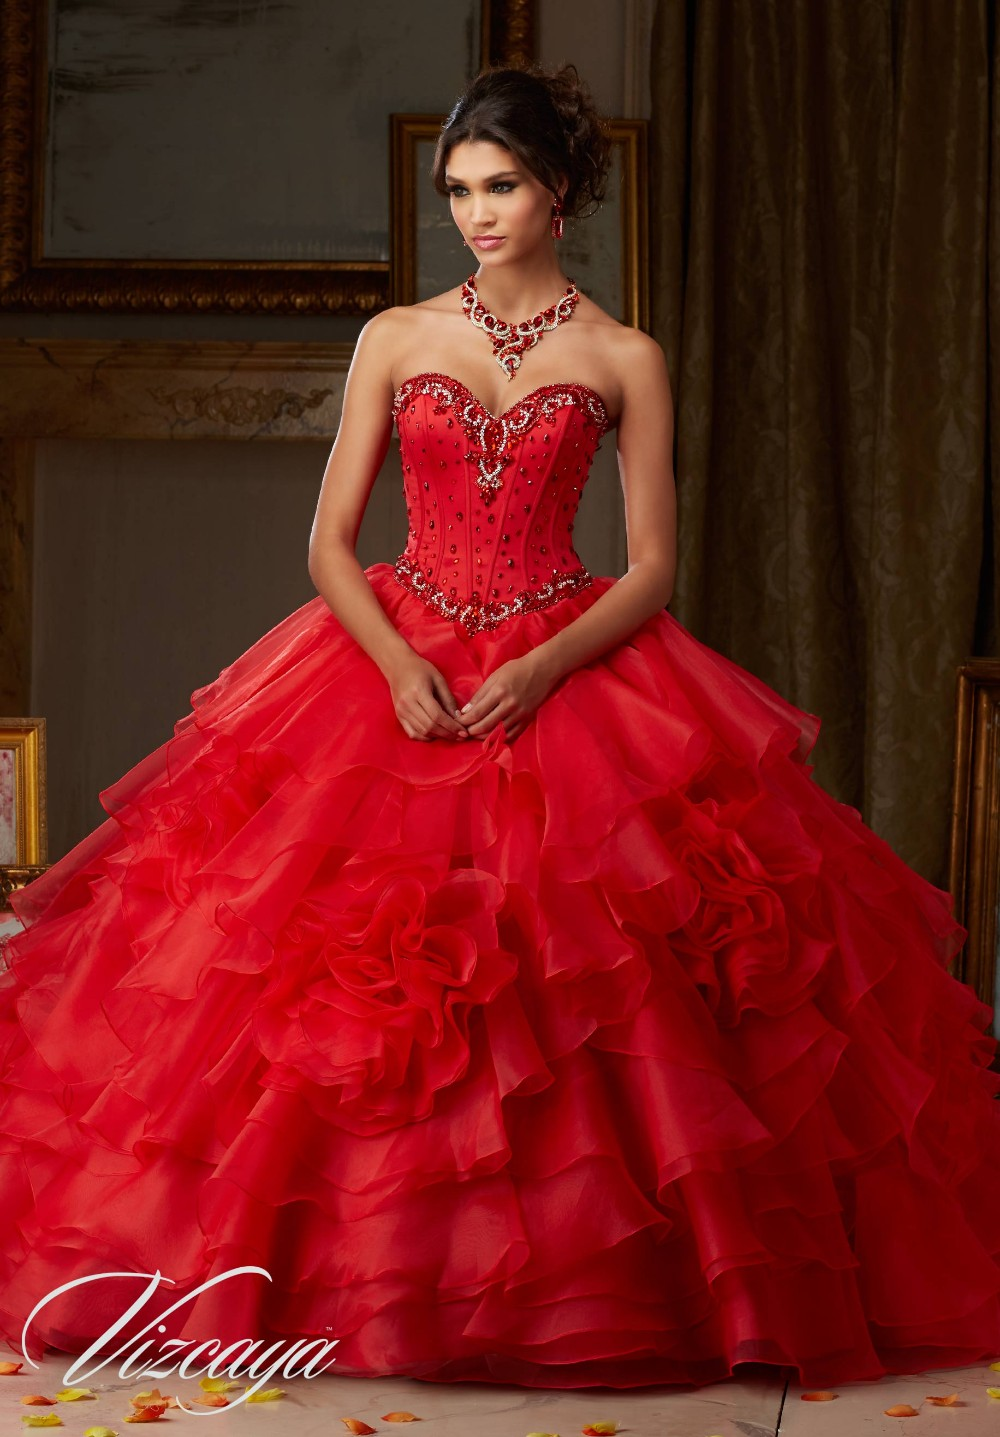 Luxury Sweetheart Ball Gown Organza Beaded Ruffles Red Princess Quinceanera Dresses 2016 Vestidos De Quince Anos Lace-Up 629